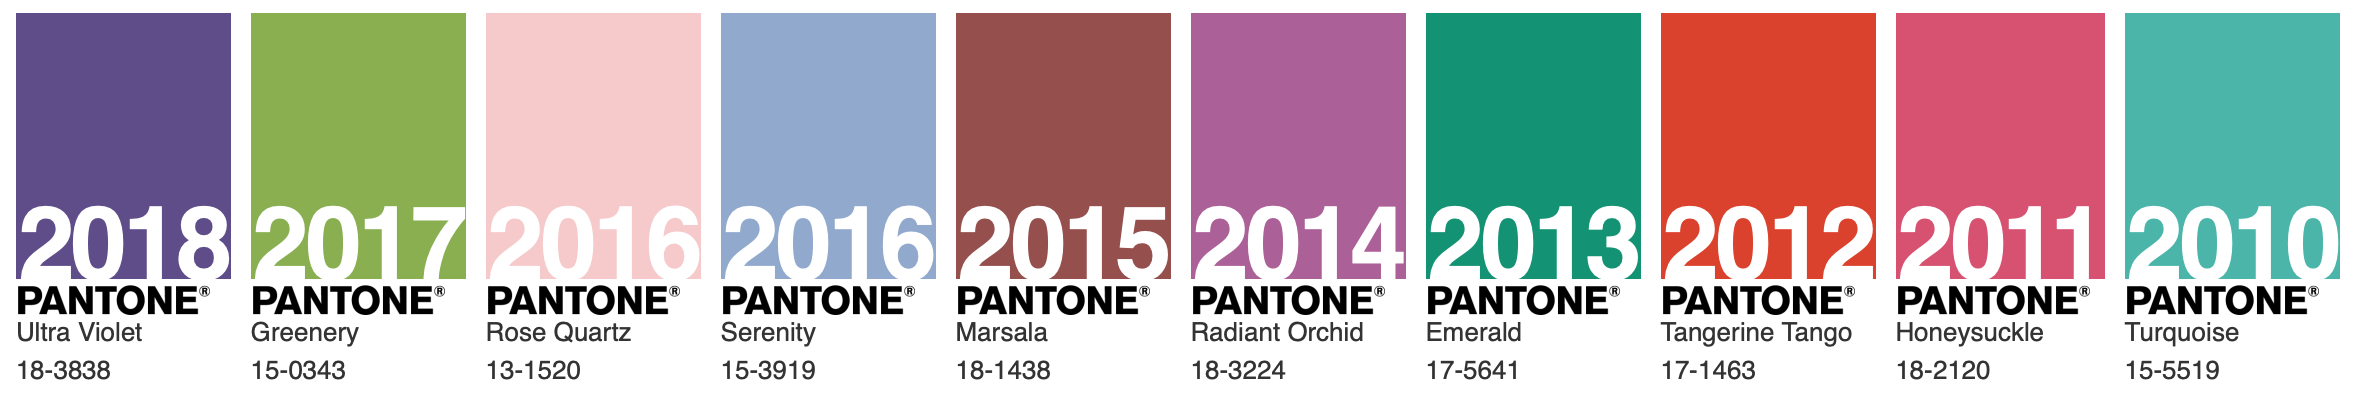 Pantone's Colours of the Year for the last ten years